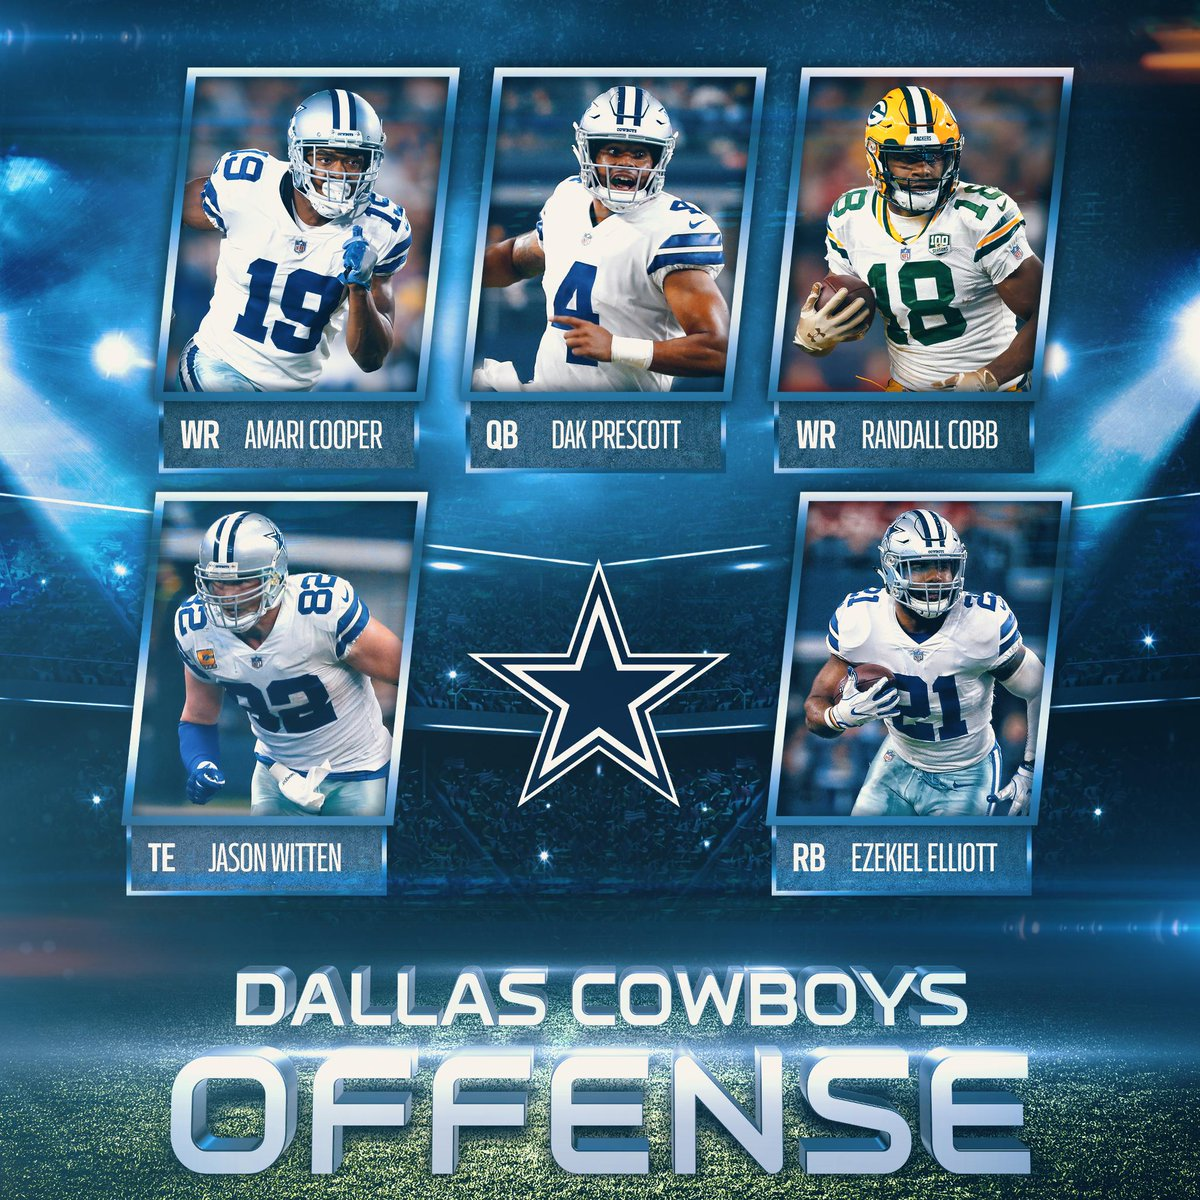 The @dallascowboys offense is full of playmakers <br>http://pic.twitter.com/pw2OHuyDk8